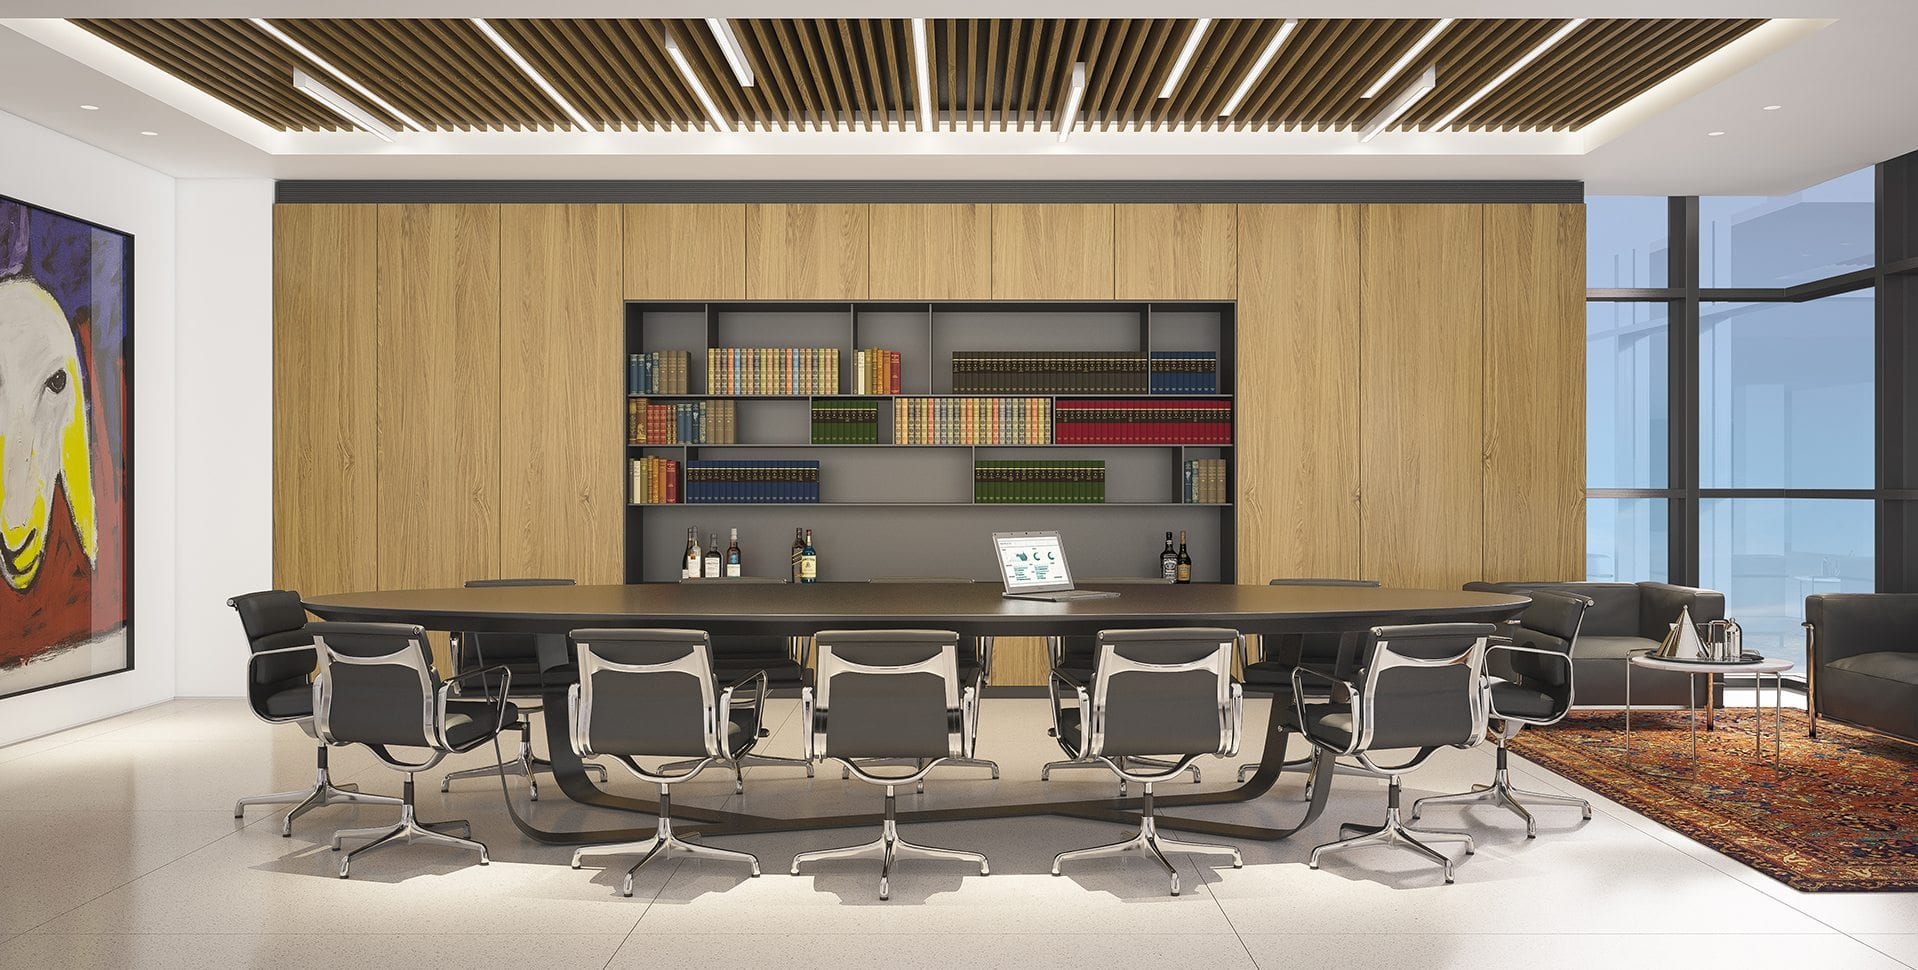 Maayan-Golan_Architectural-Visualization_ office-interior-visualization_meeting-room_btc-tower-center_company-mch_02